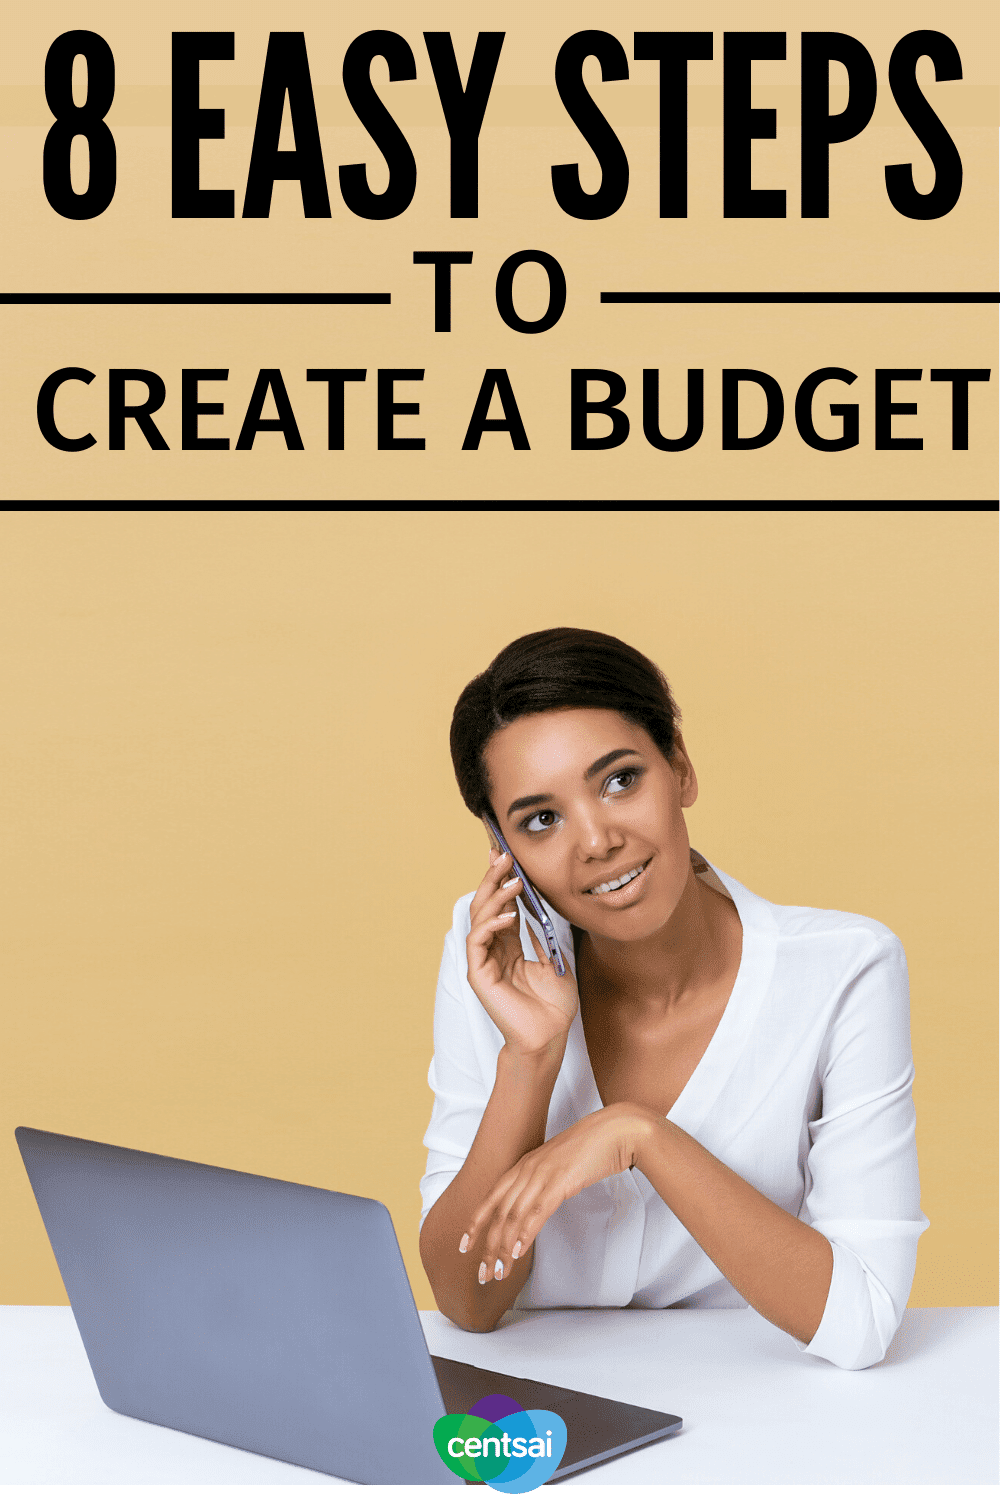 8 Easy Steps to Create a Budget